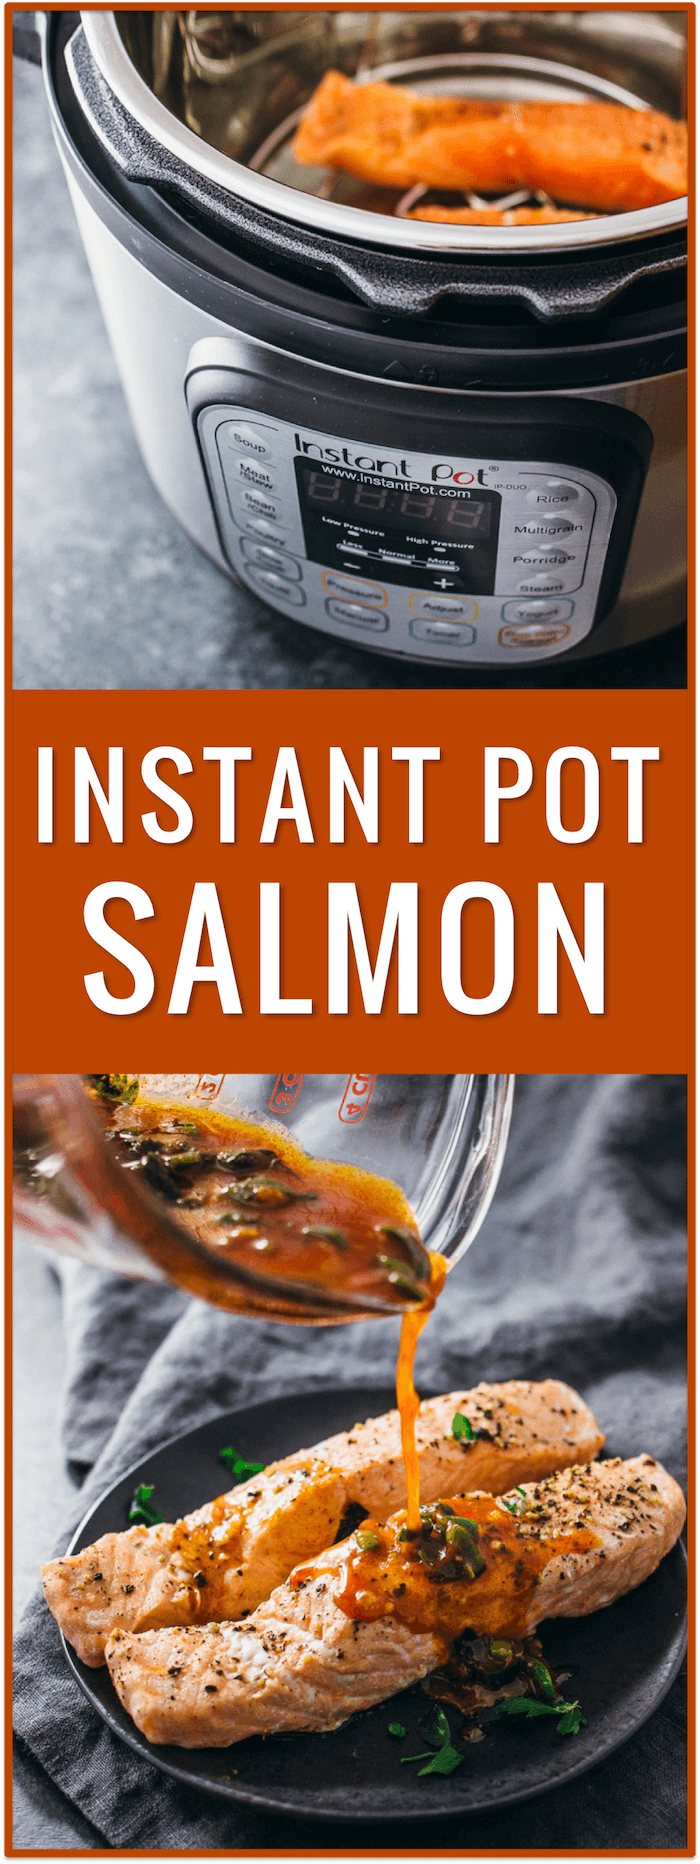 instant pot salmon, chili lime sauce, pressure cooker salmon, electric pressure cooker fish recipe, fish instructions, how long to pressure cook salmon, one pot salmon recipes, cooking salmon in instant pot